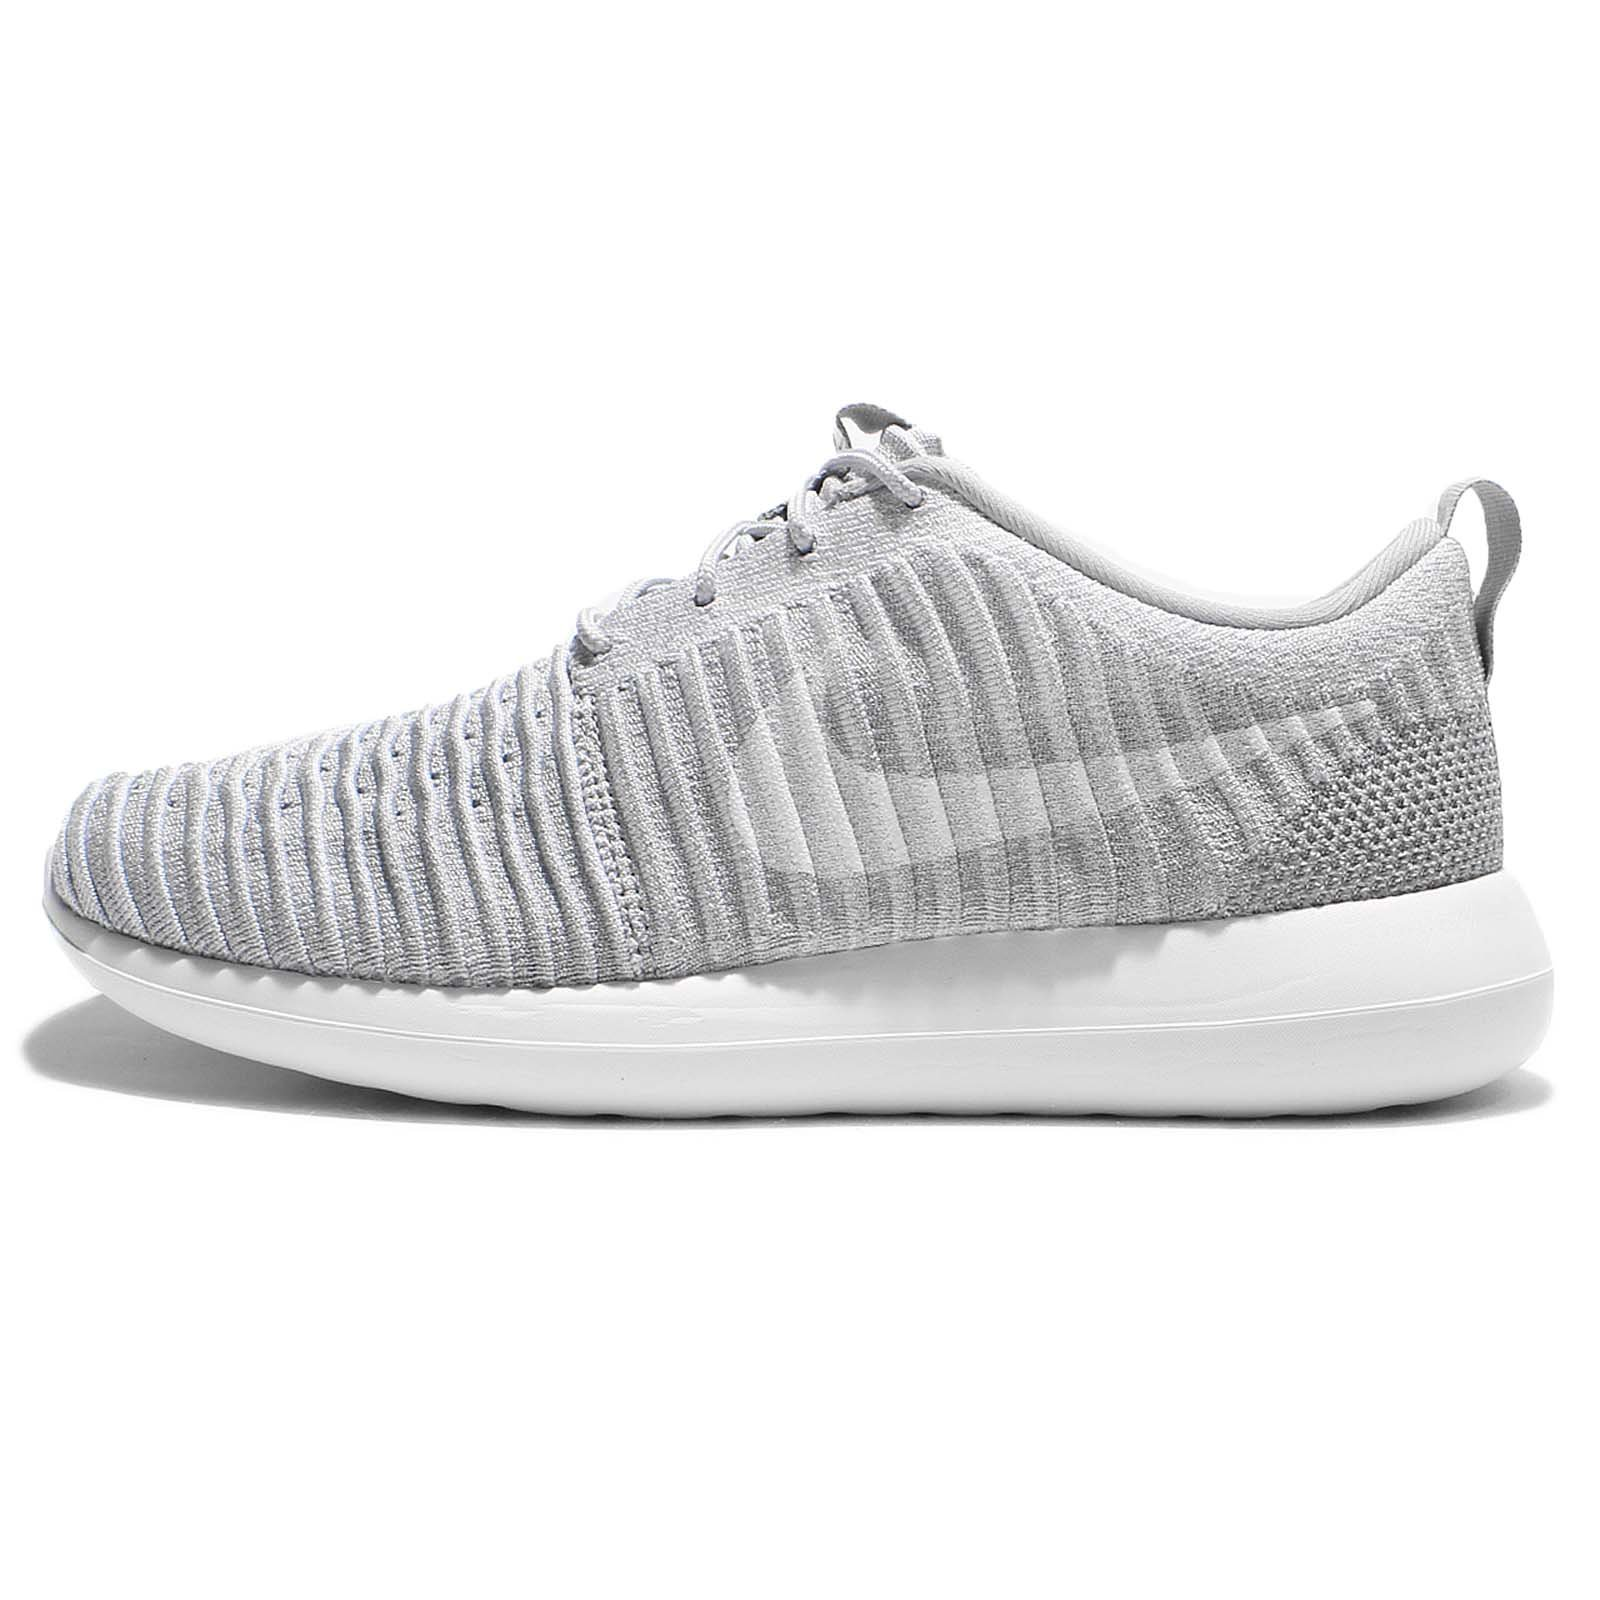 promo code 8cb0f 72174 Galleon - Nike Roshe Two Flyknit Mens Running Trainers 844833 Sneakers Shoes  (UK 7.5 US 8.5 EU 42, Wolf Grey Whie Stadium Green 008)